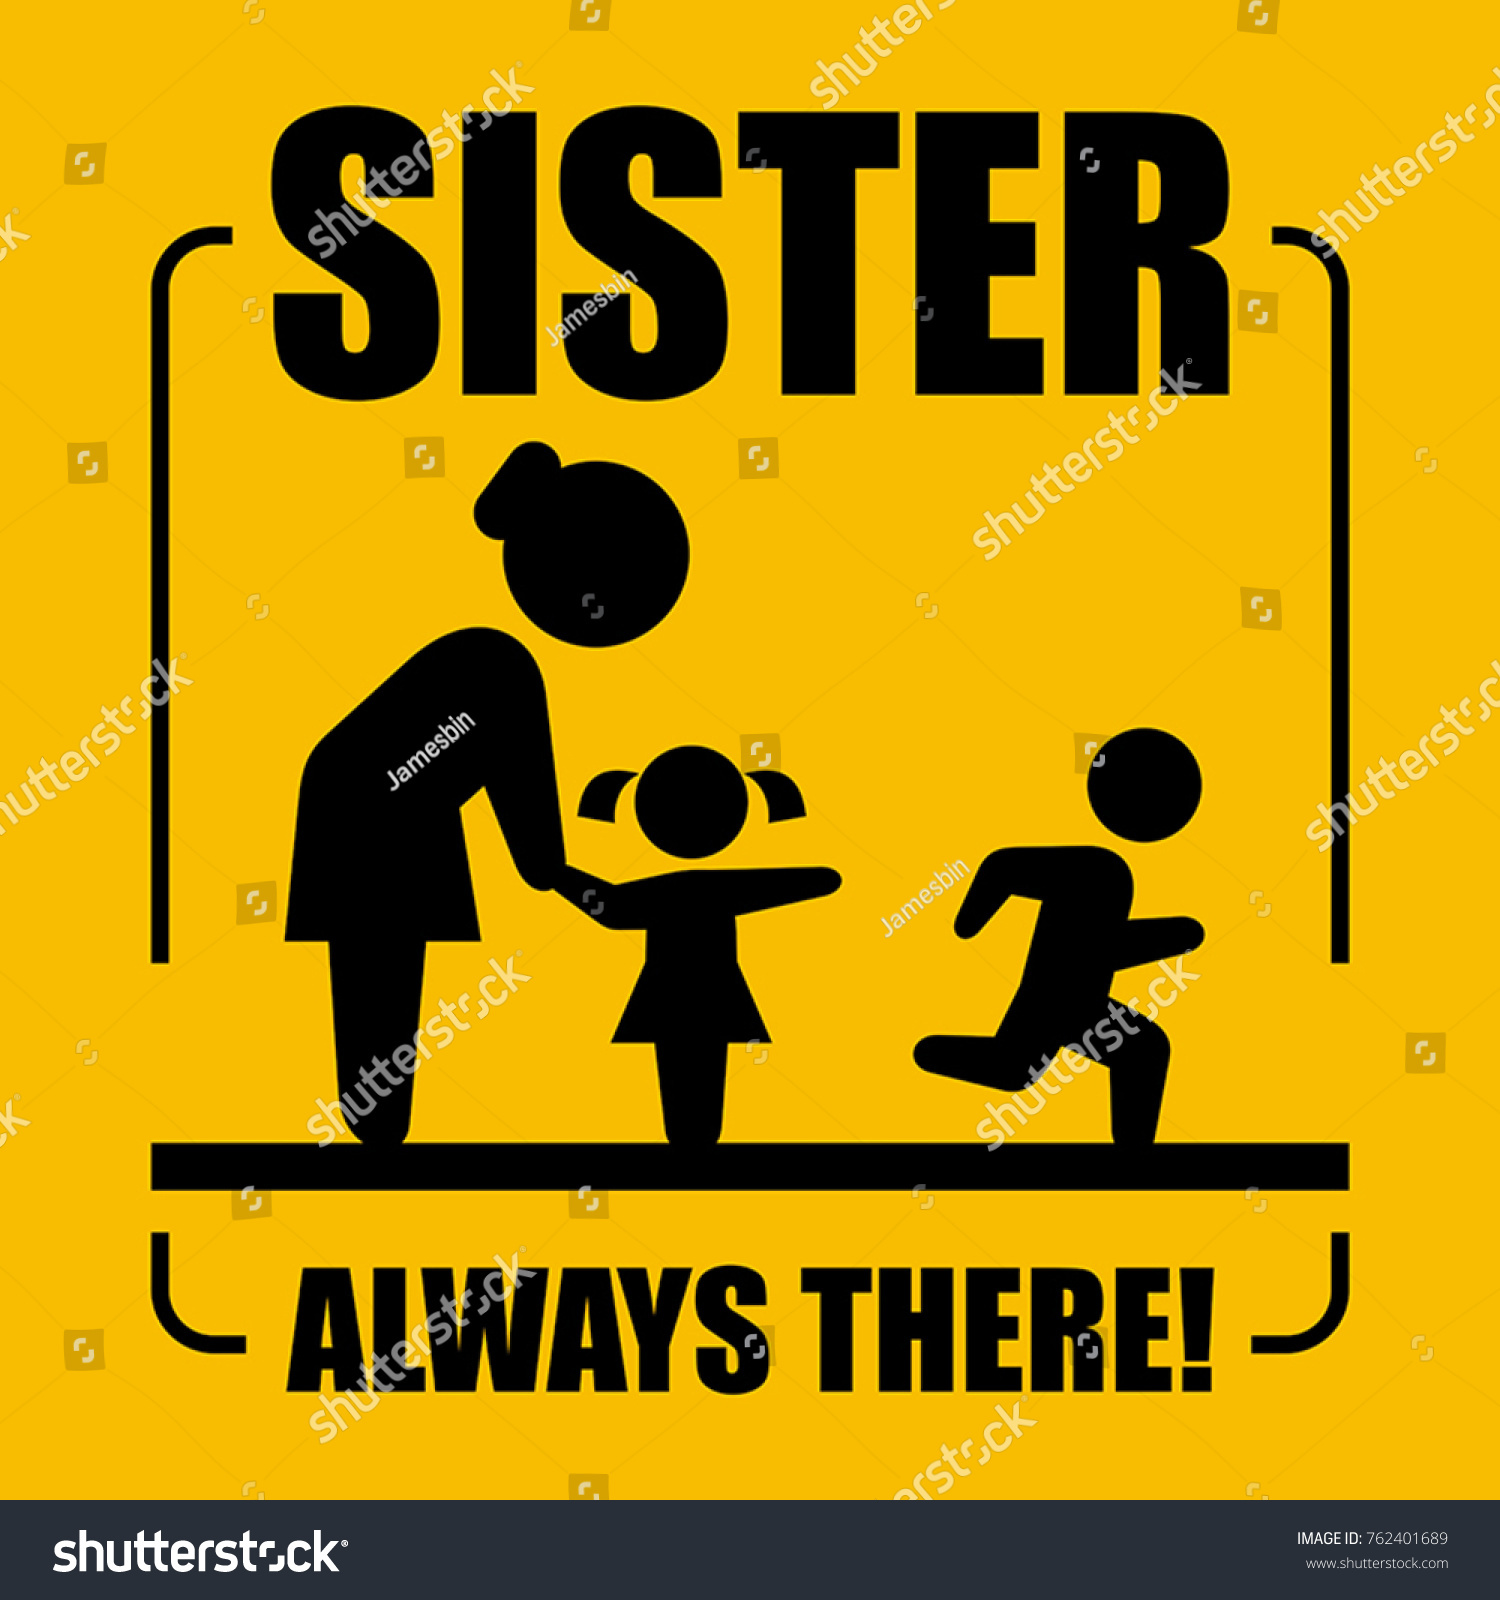 Sister Funny Quotes Funny Sister Images Party Hard The Meta Picture 75 Funny Sister